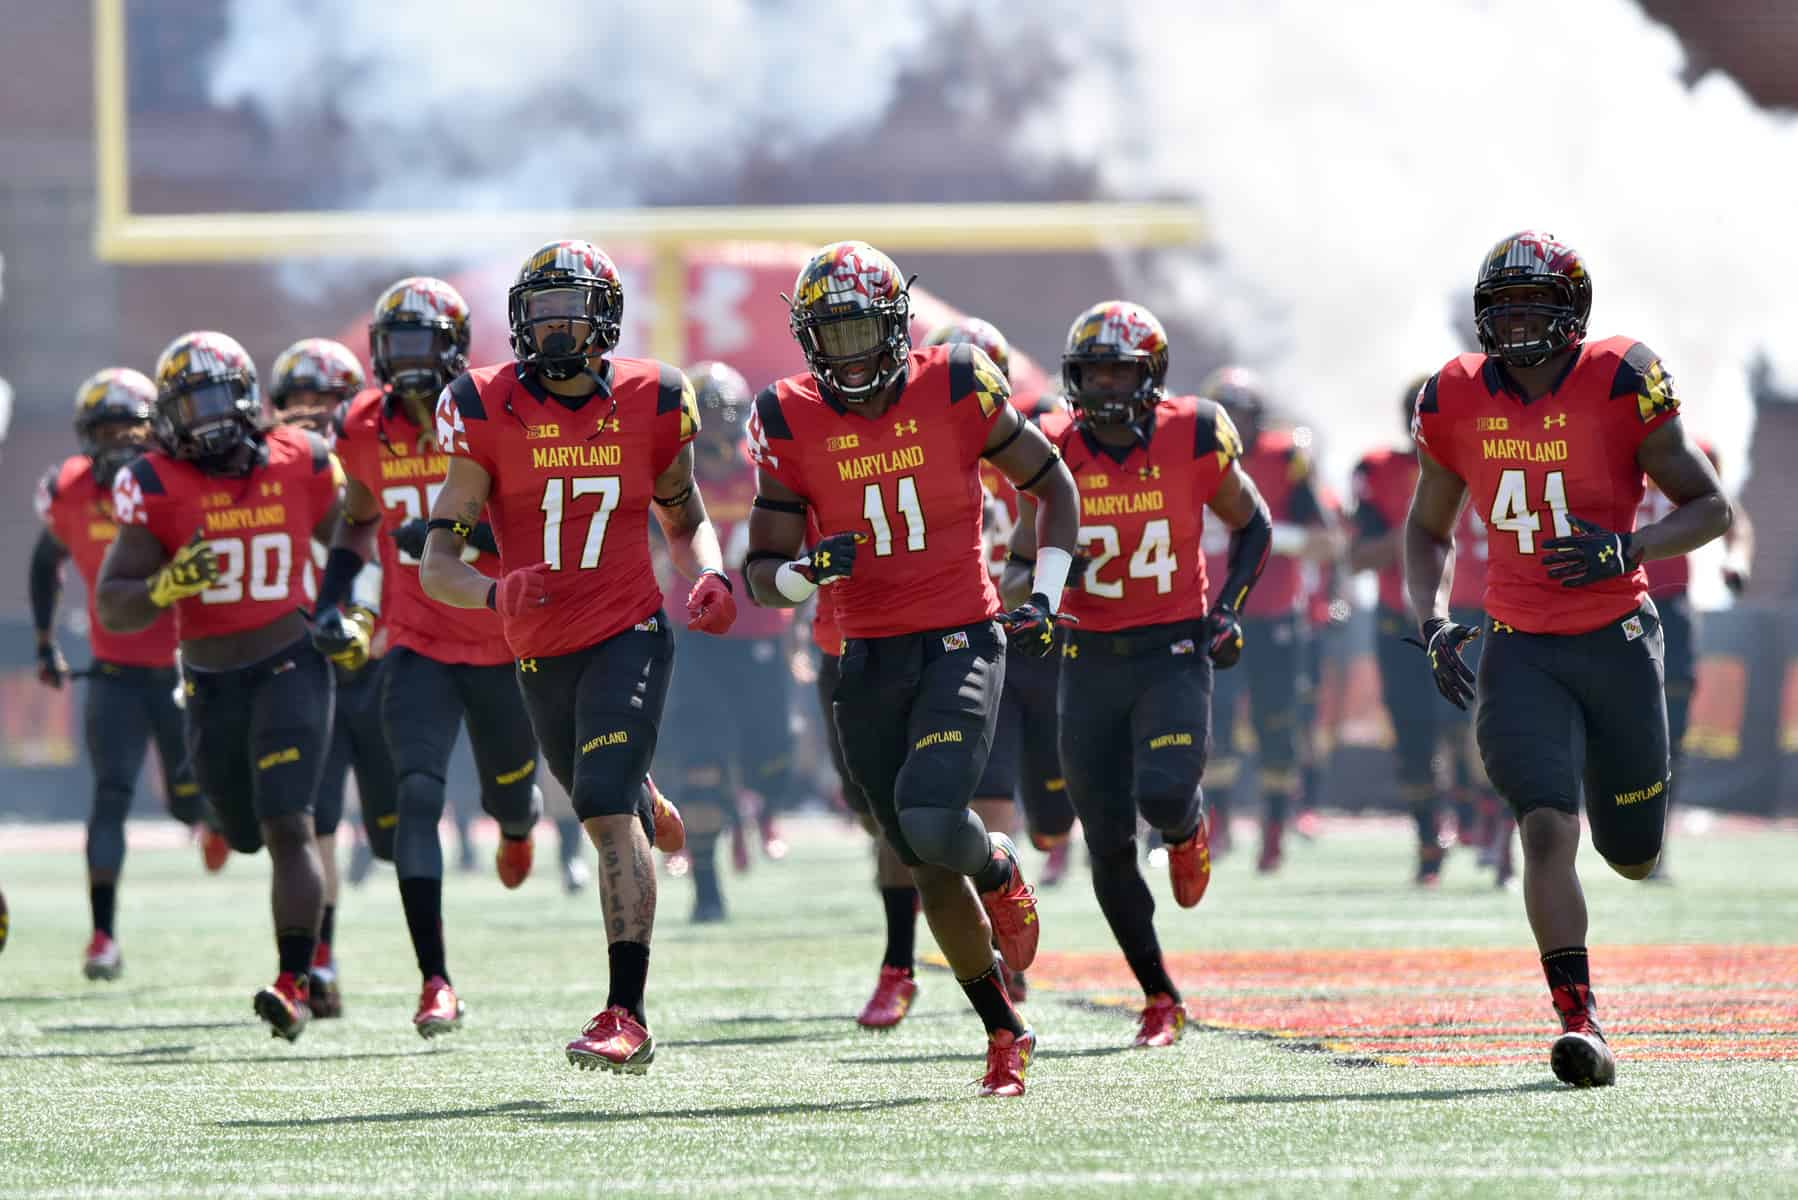 University of Maryland football team running out onto the field